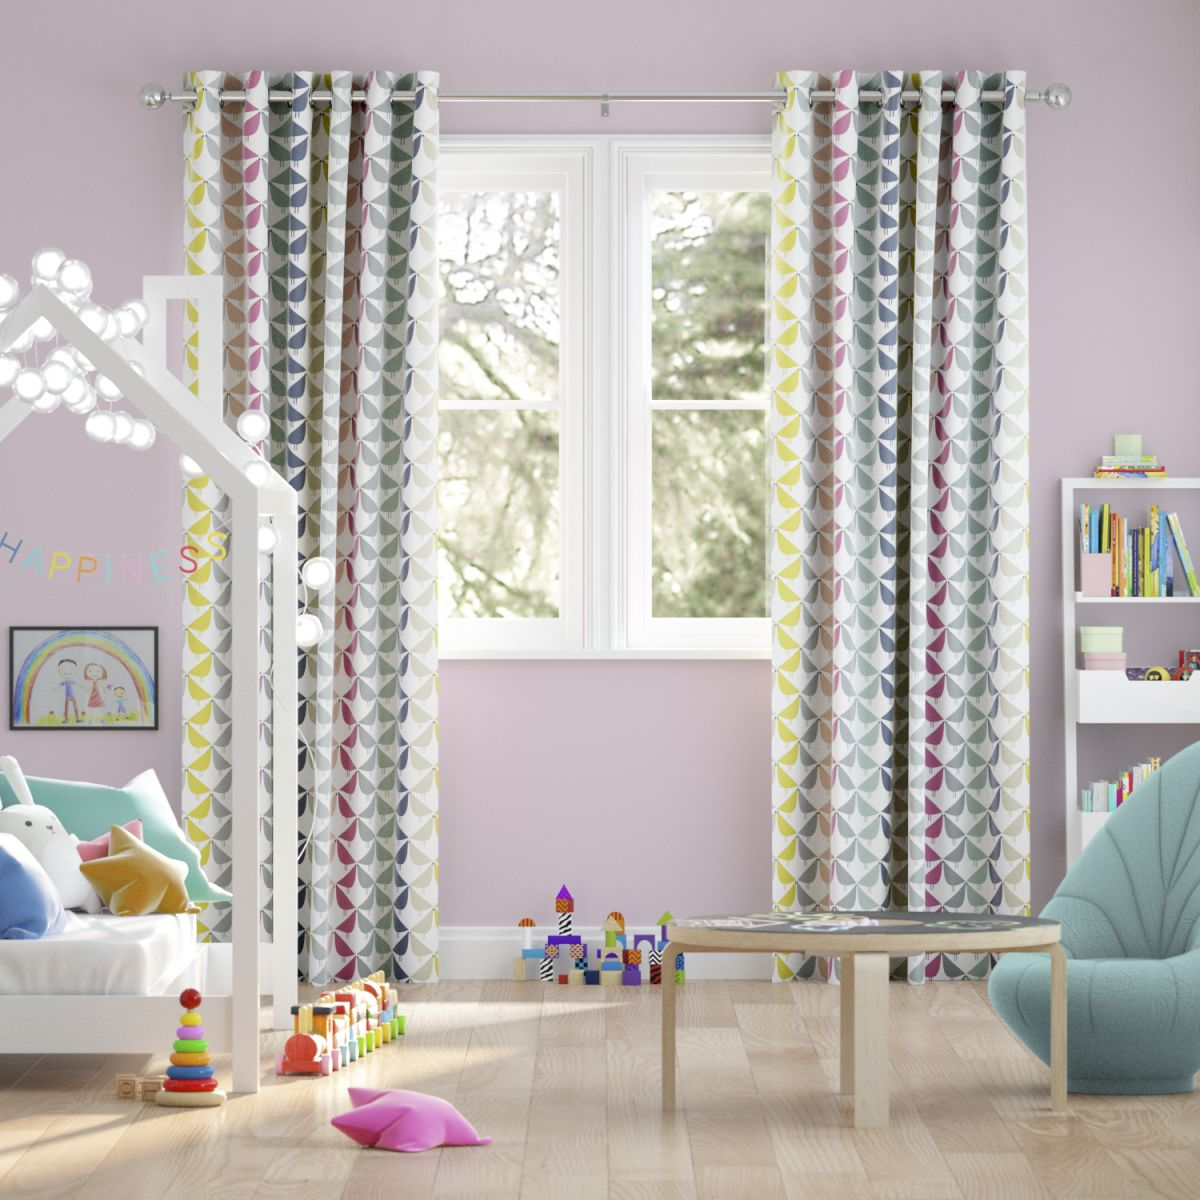 Window treatments for children's bedrooms: 11 wonderful ... on Bedroom Curtain Ideas  id=88279